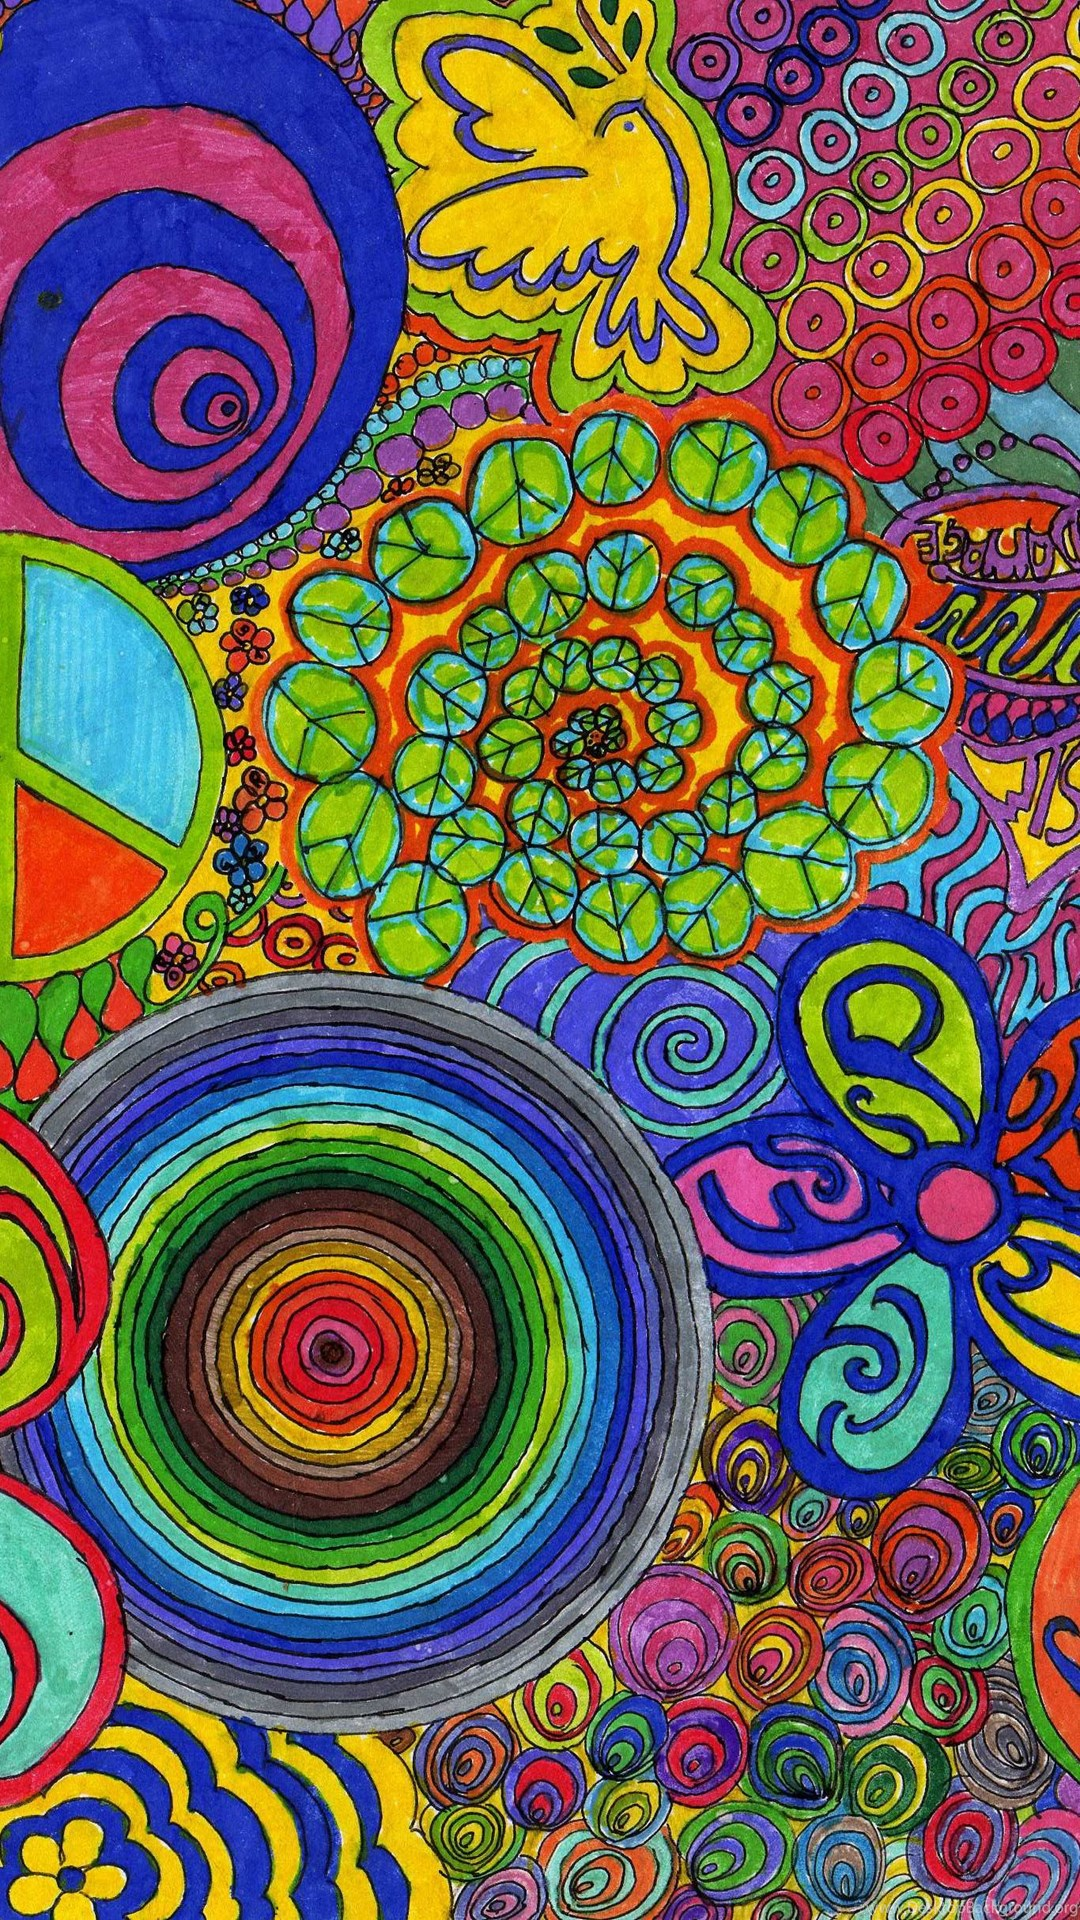 Color Full Hd Wallpaper Abstract Wallpaper Hippie Flower Free Wallpapers For Hd